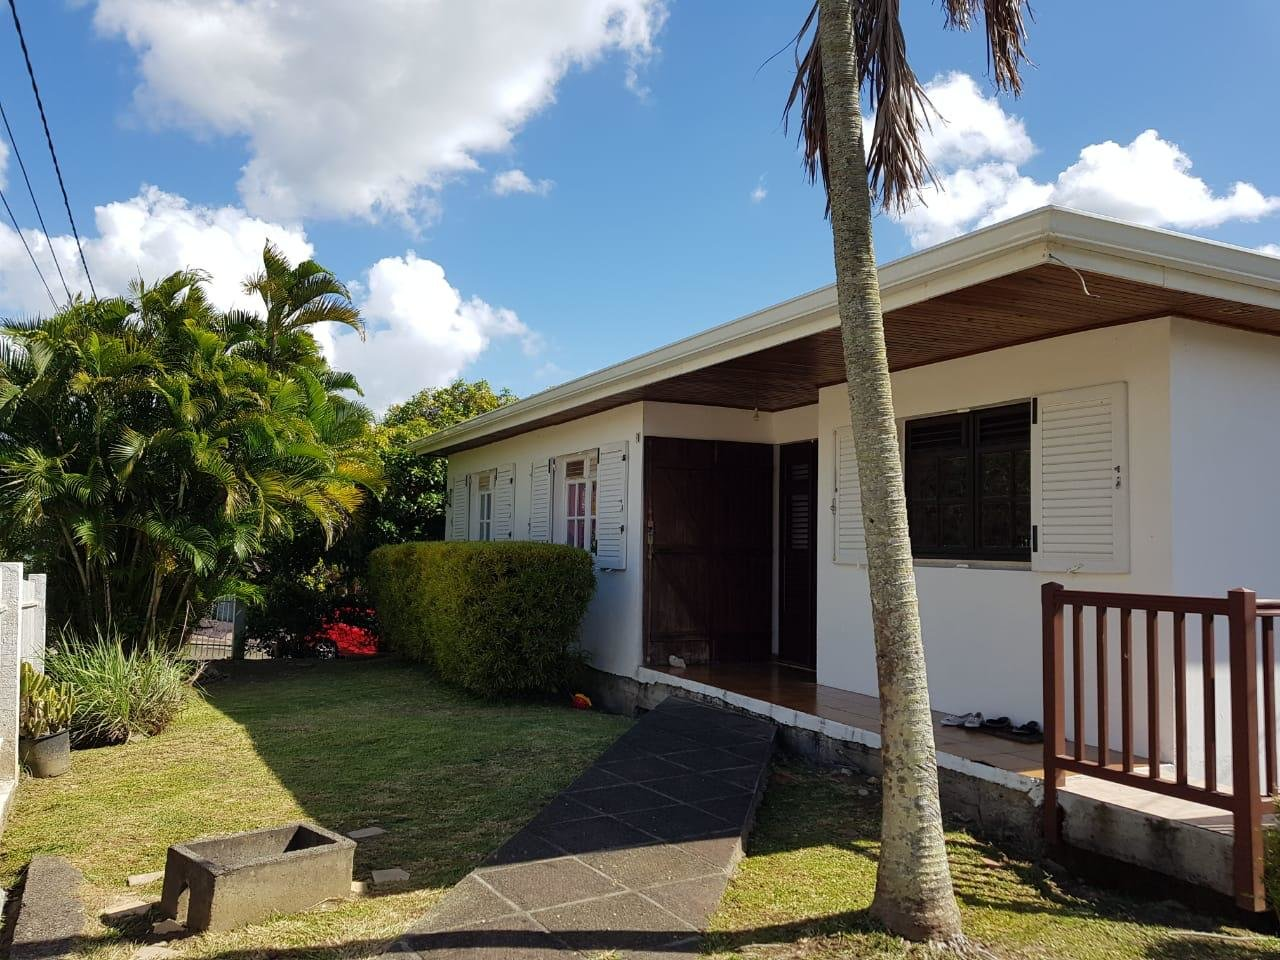 Rental Villa - Fort-de-France - Martinique